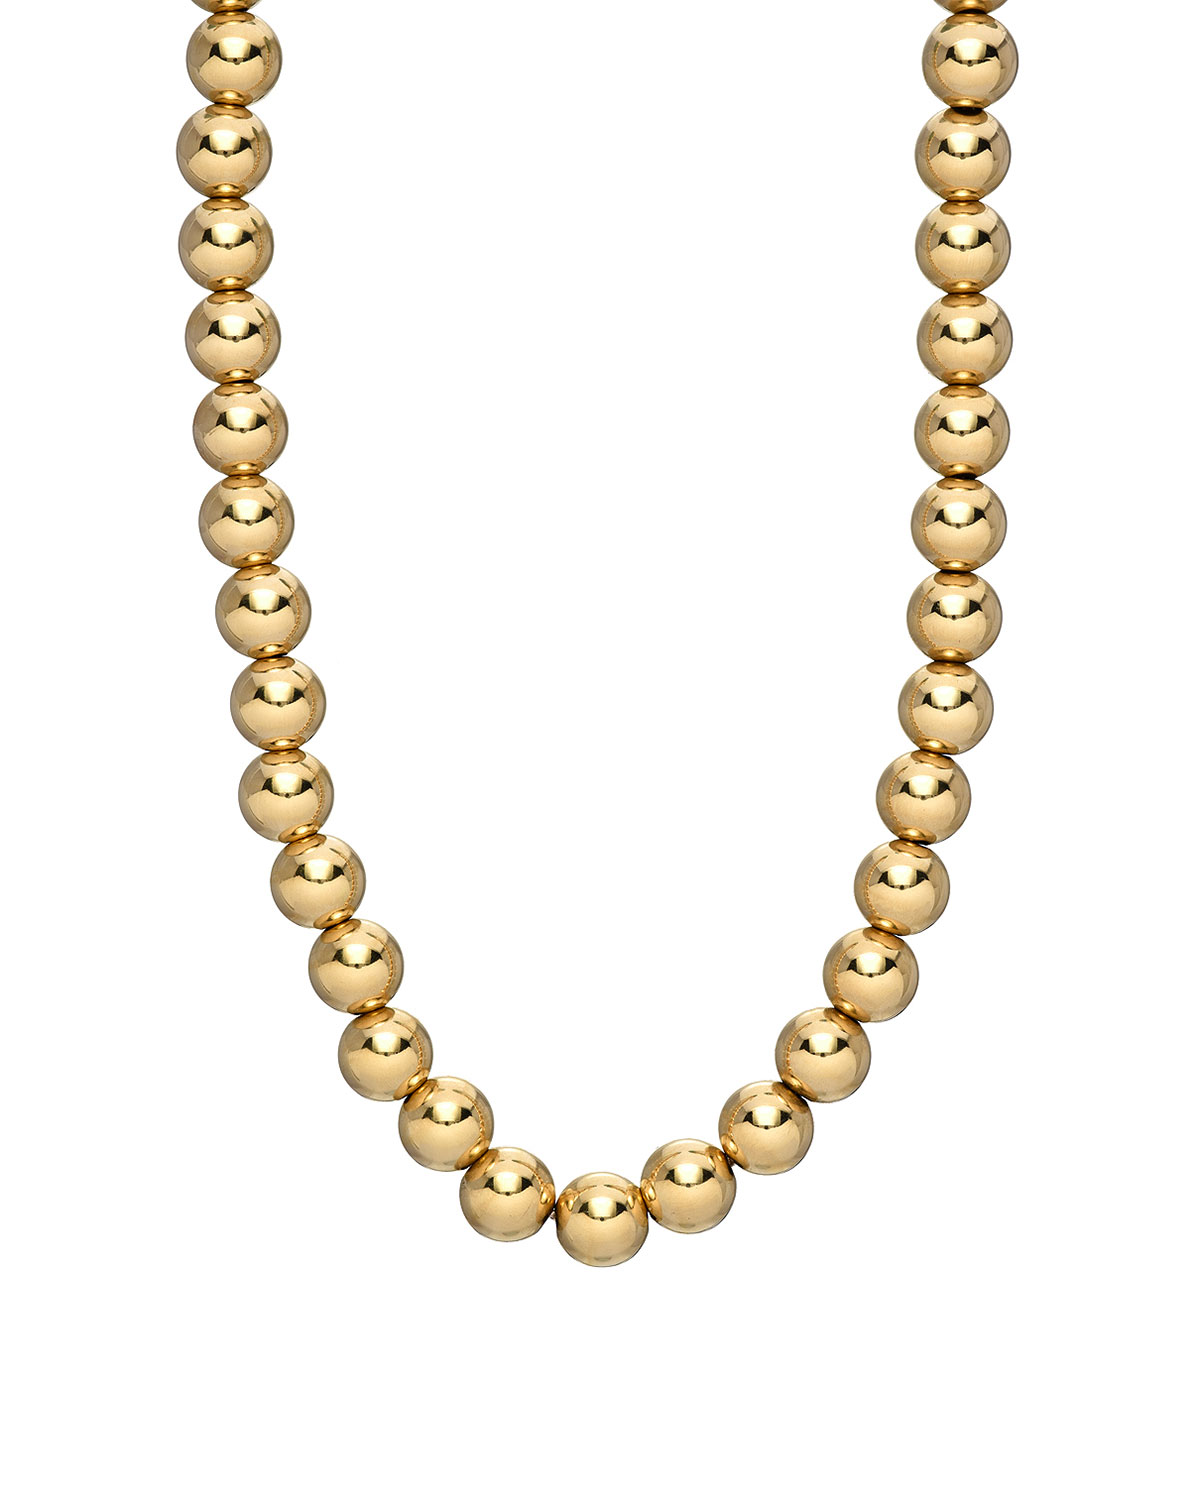 Zoe Lev Jewelry 14k Gold 5mm Bead Necklace